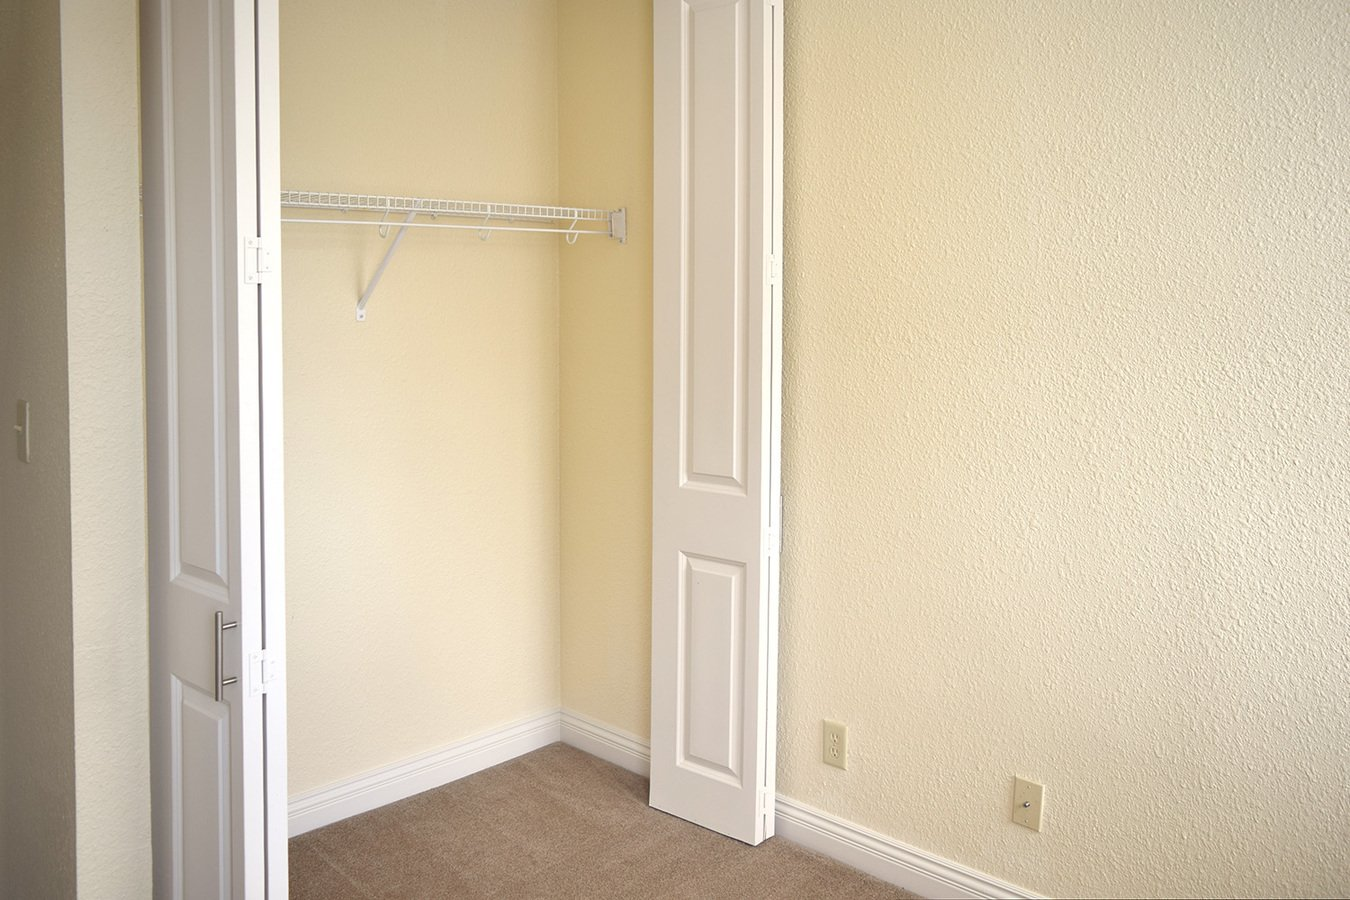 3 Bedrooms 1 Bathroom Apartment for rent at The Duke in Kansas City, MO